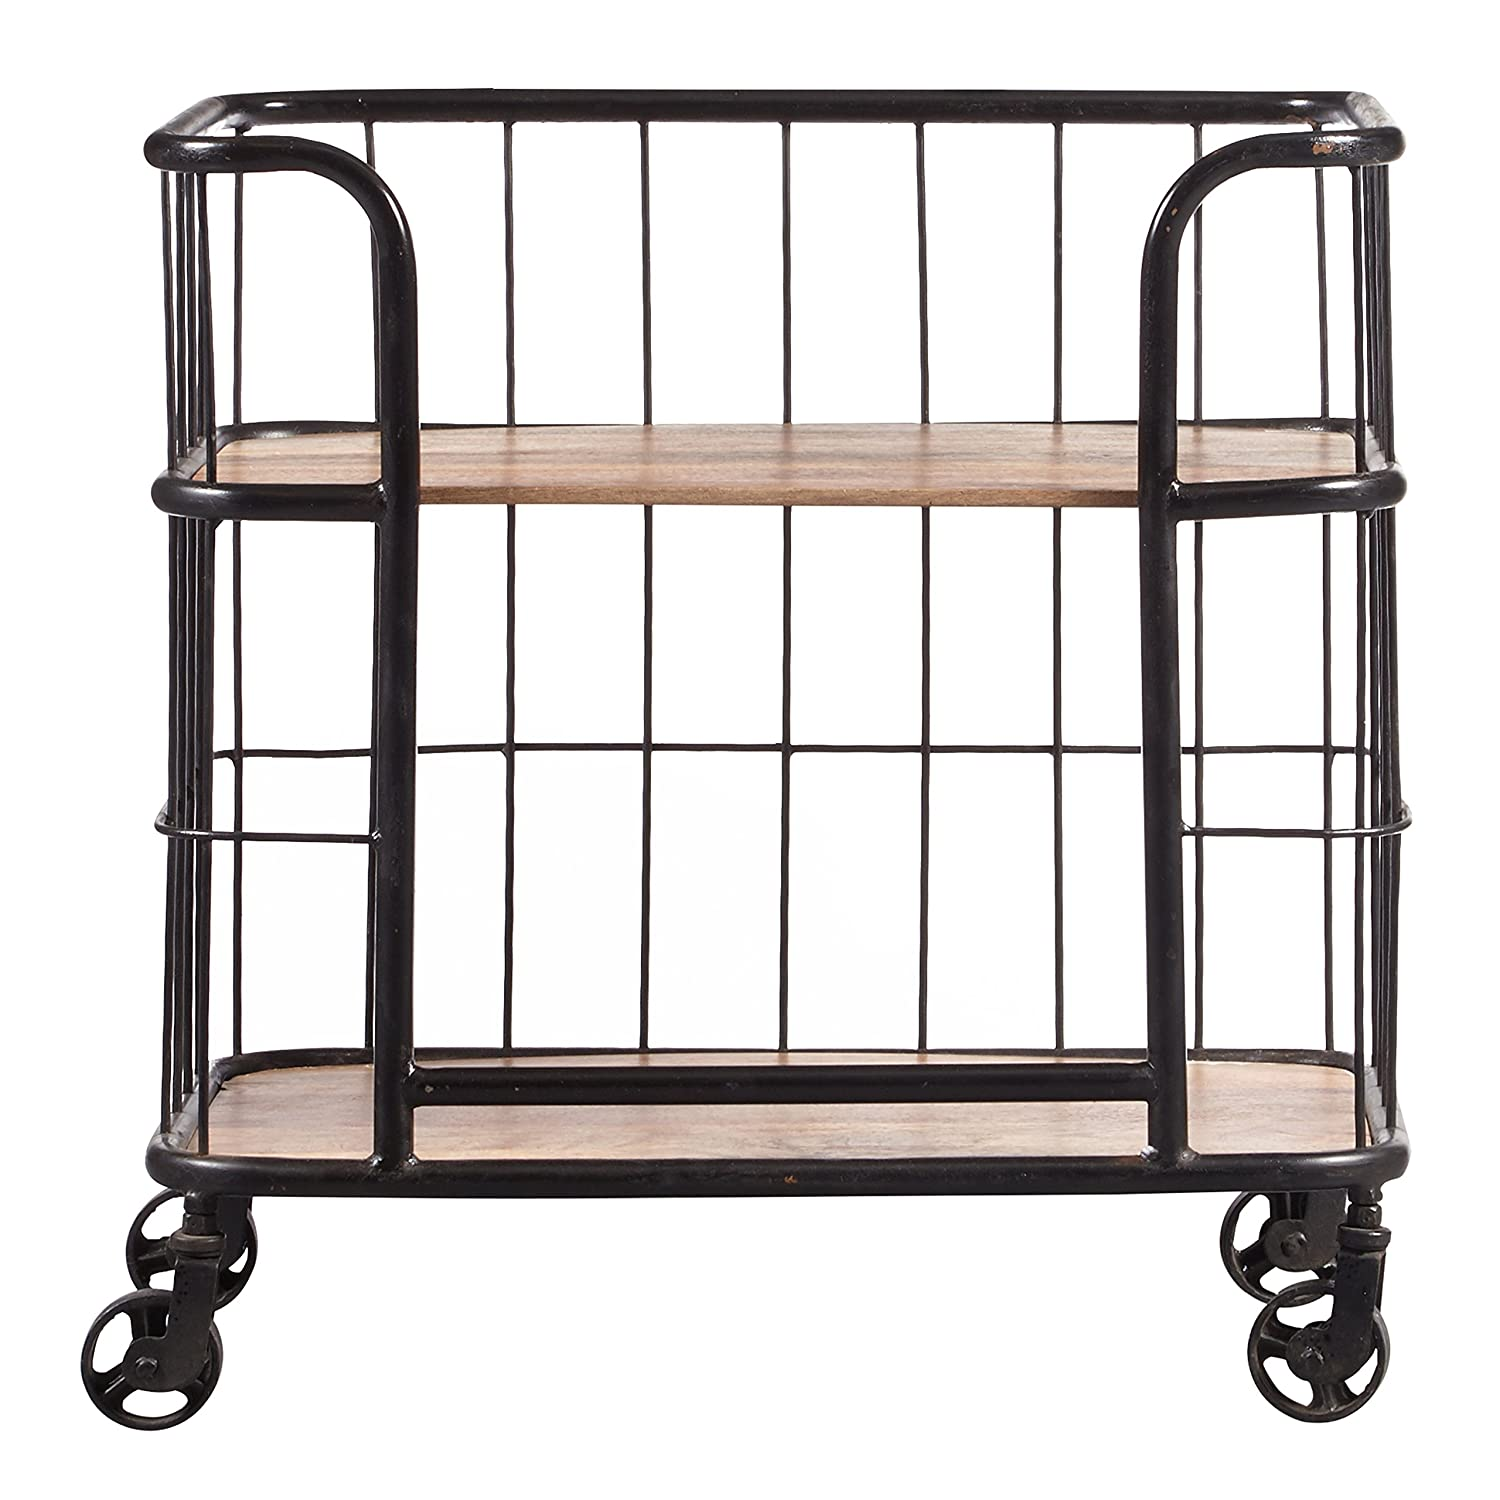 Industrial Wood and metal trolley cart